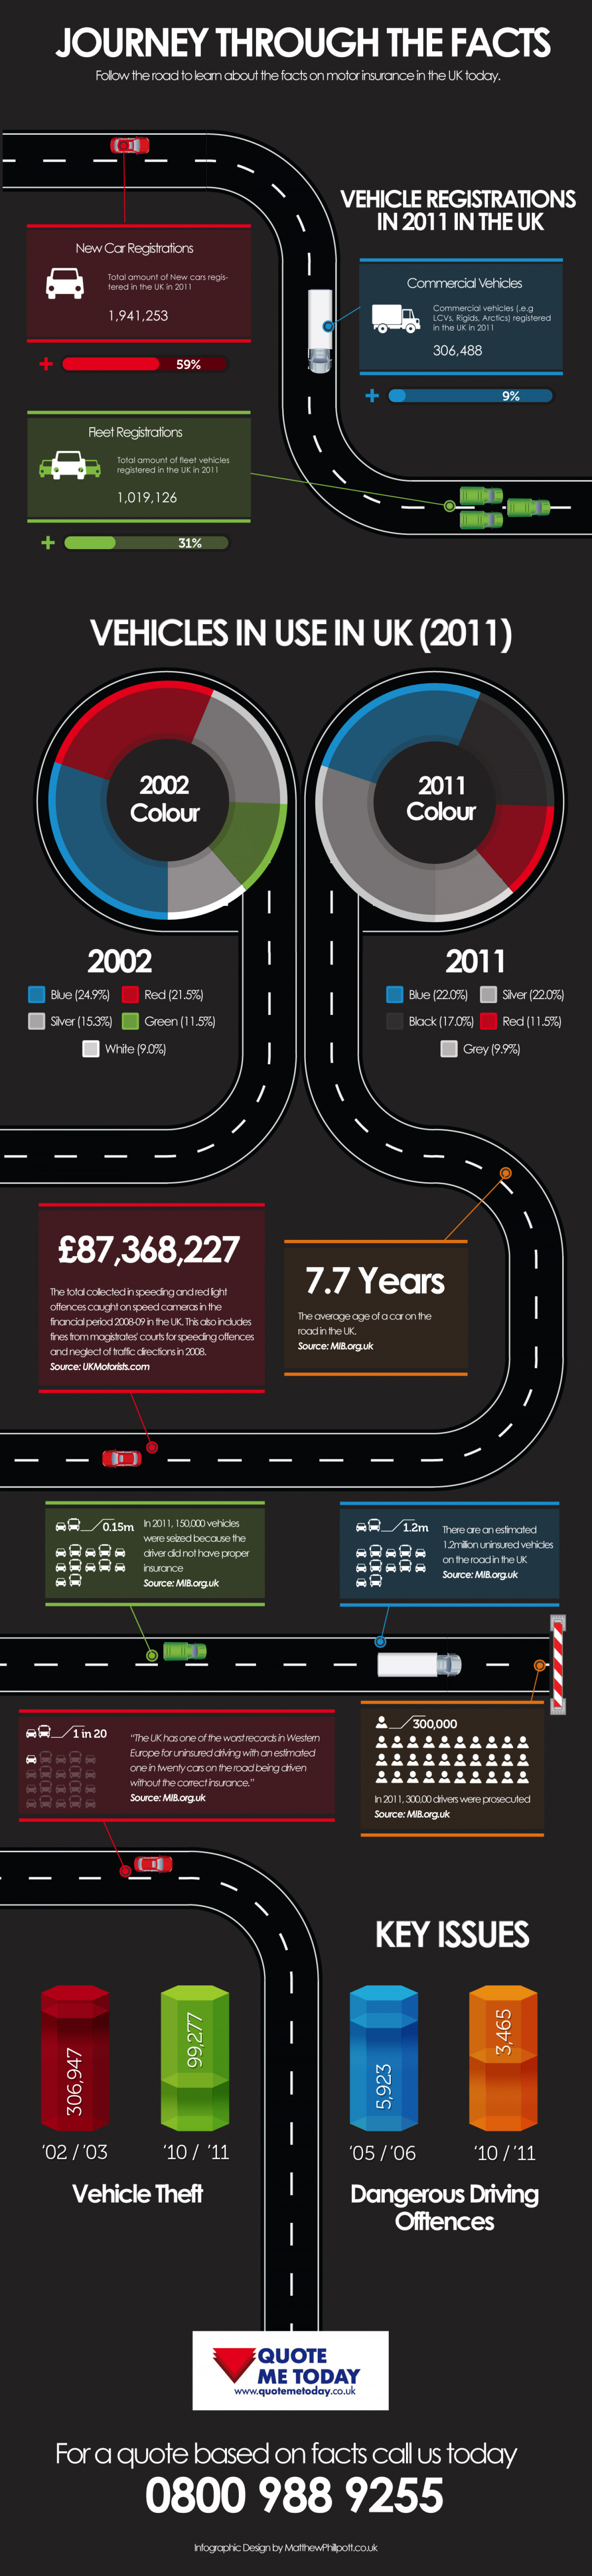 Motor Trade: A Journey Through the Facts Infographic